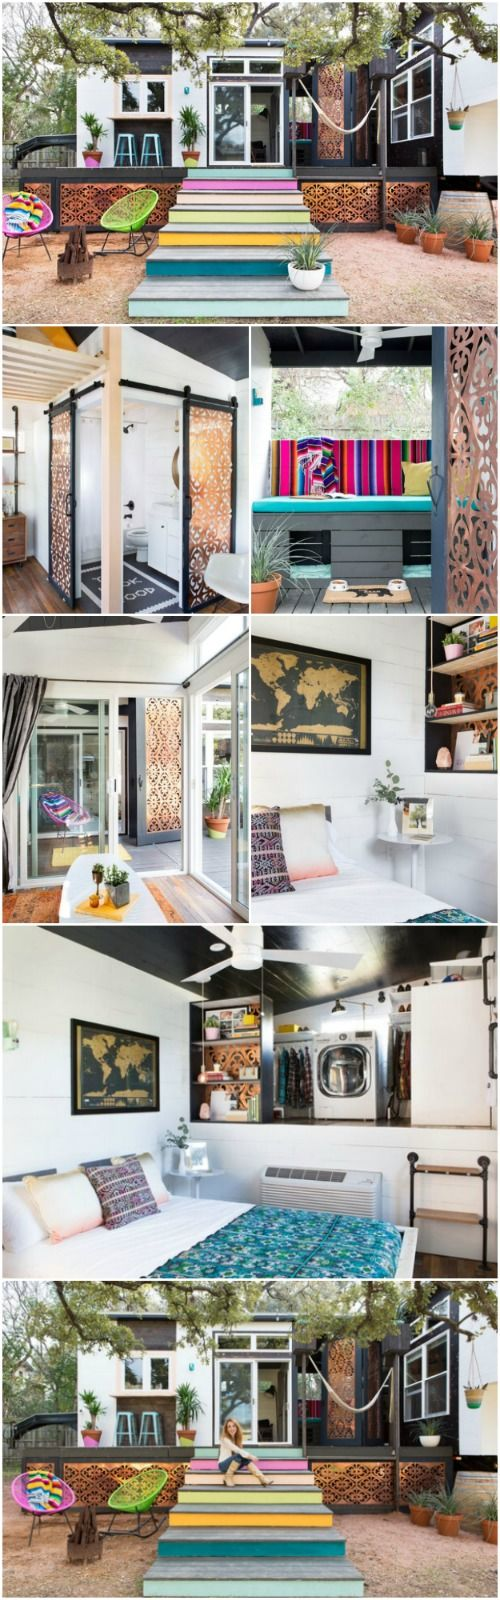 Designer Kim Lewis Helps Create Eclectic Tiny House In Austin Texas